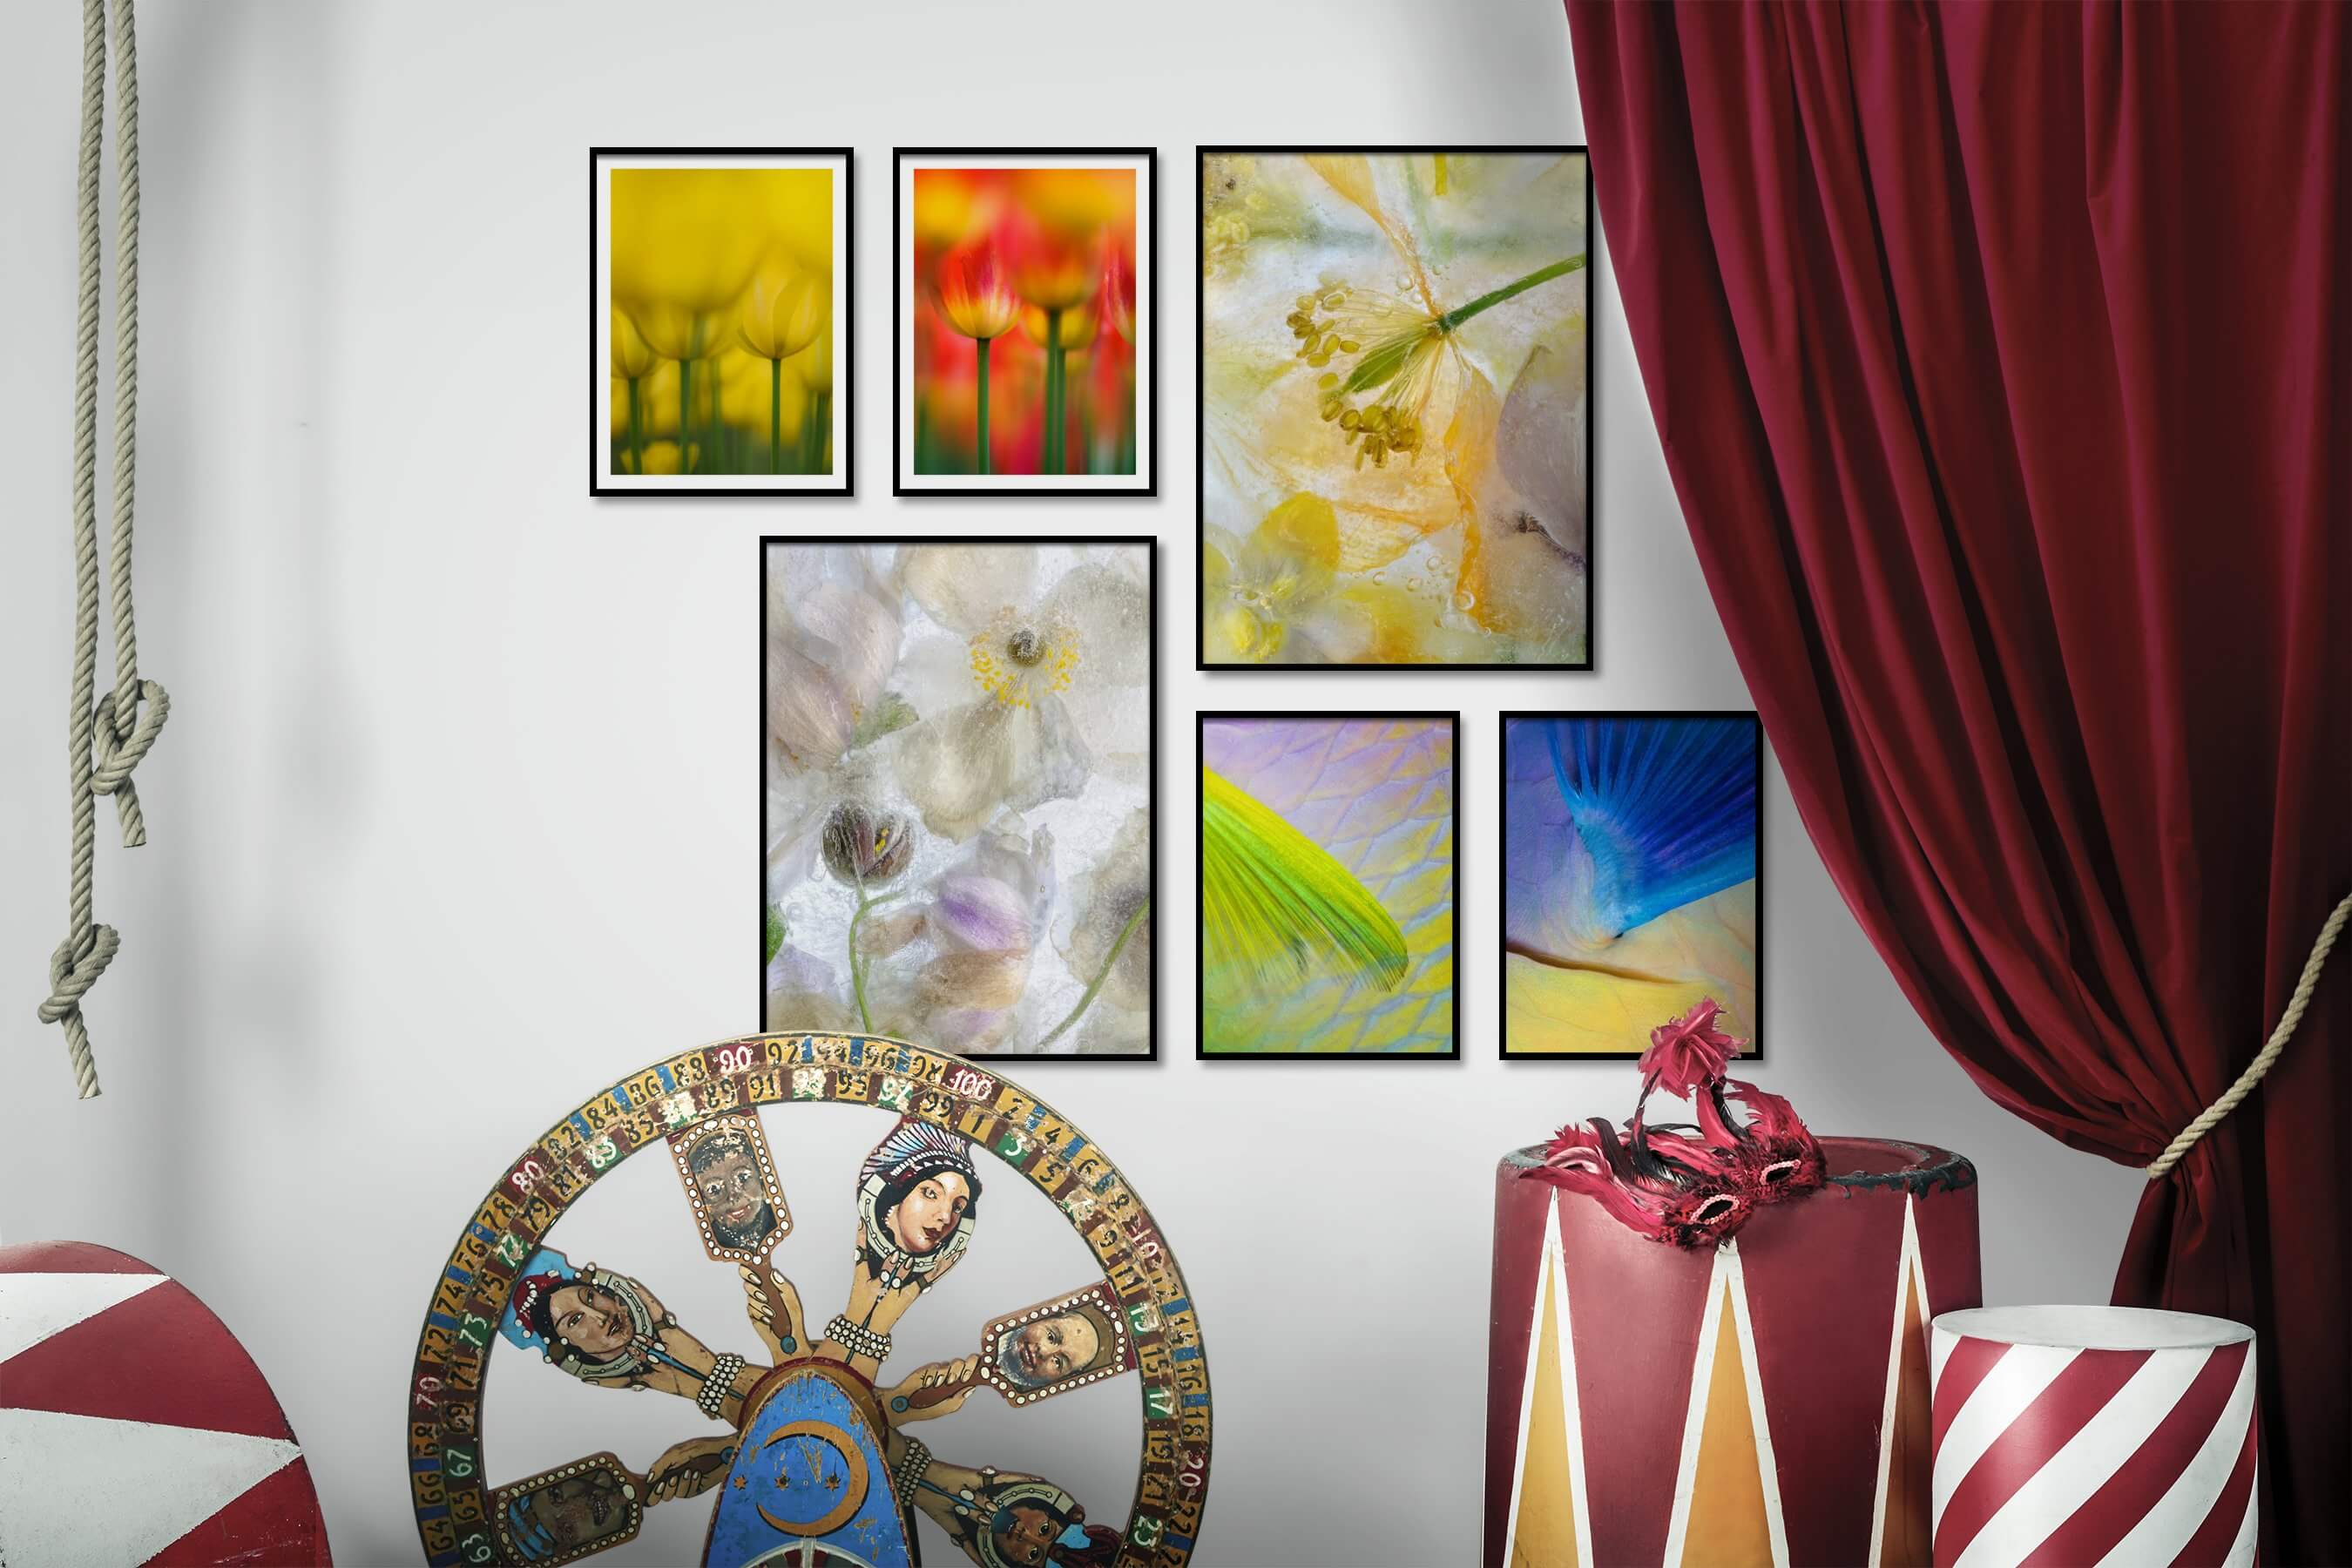 Gallery wall idea with six framed pictures arranged on a wall depicting For the Moderate, Flowers & Plants, and Animals